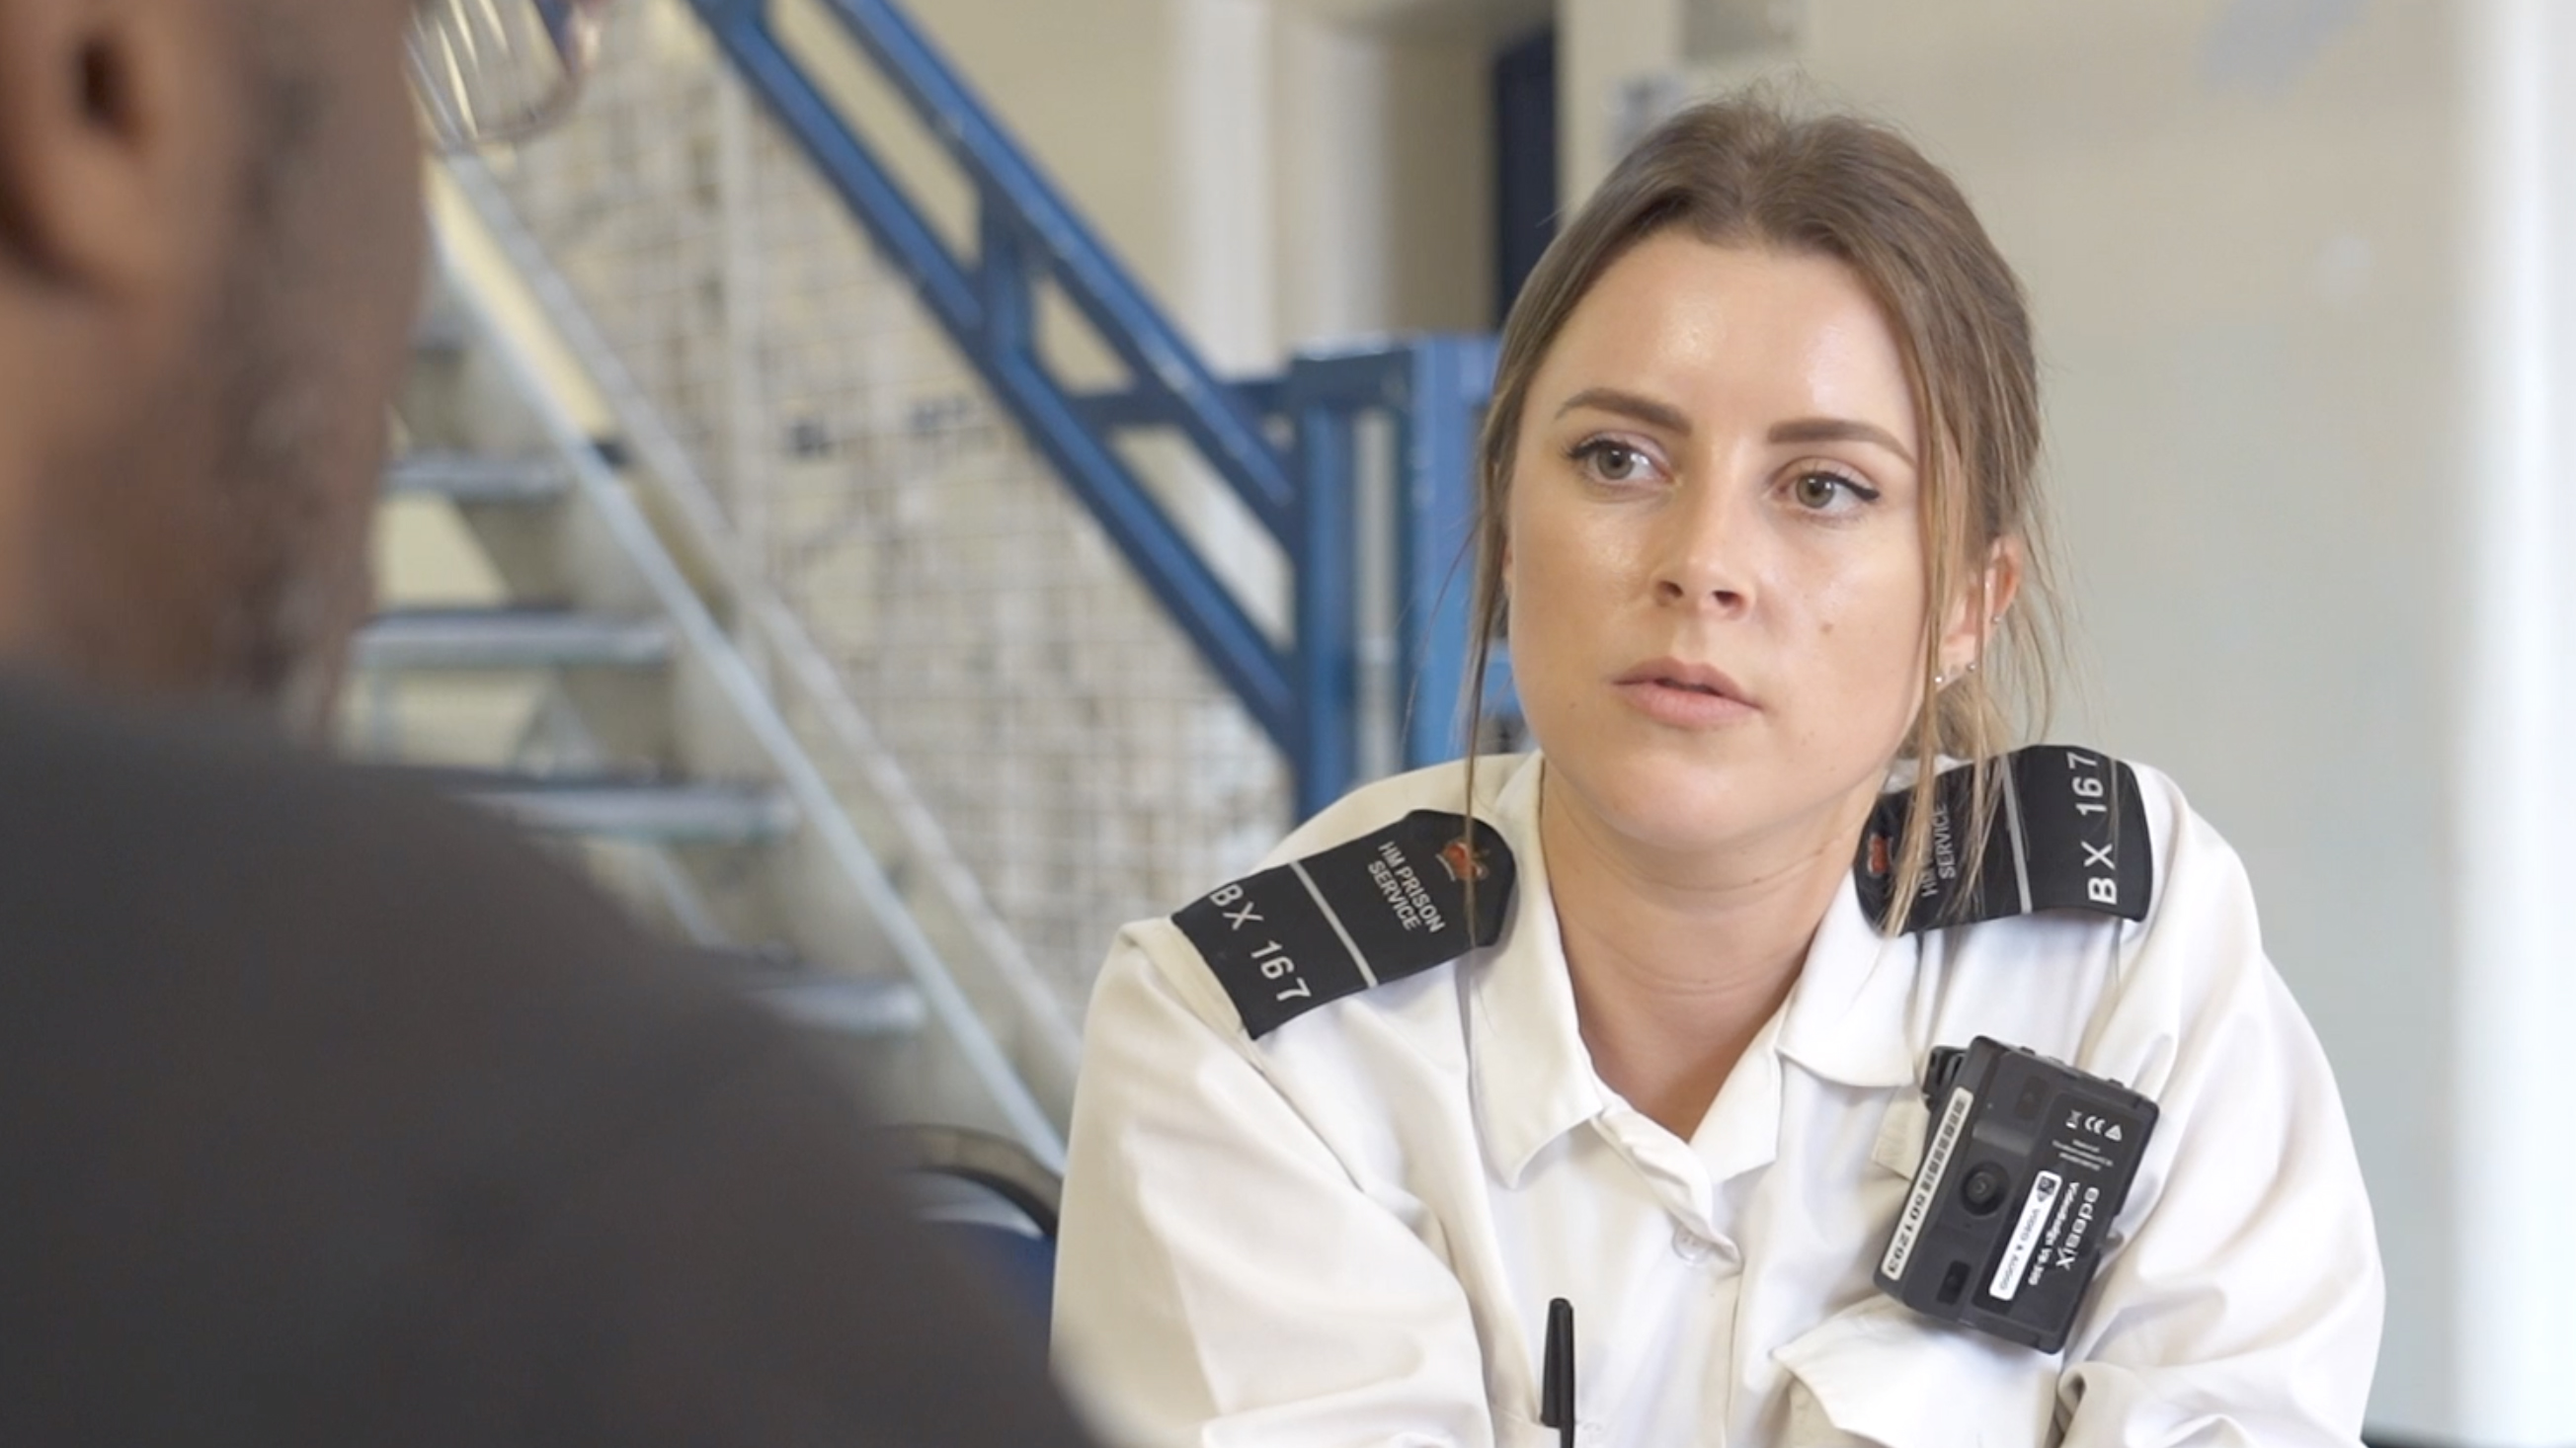 Prison officer role as a key worker